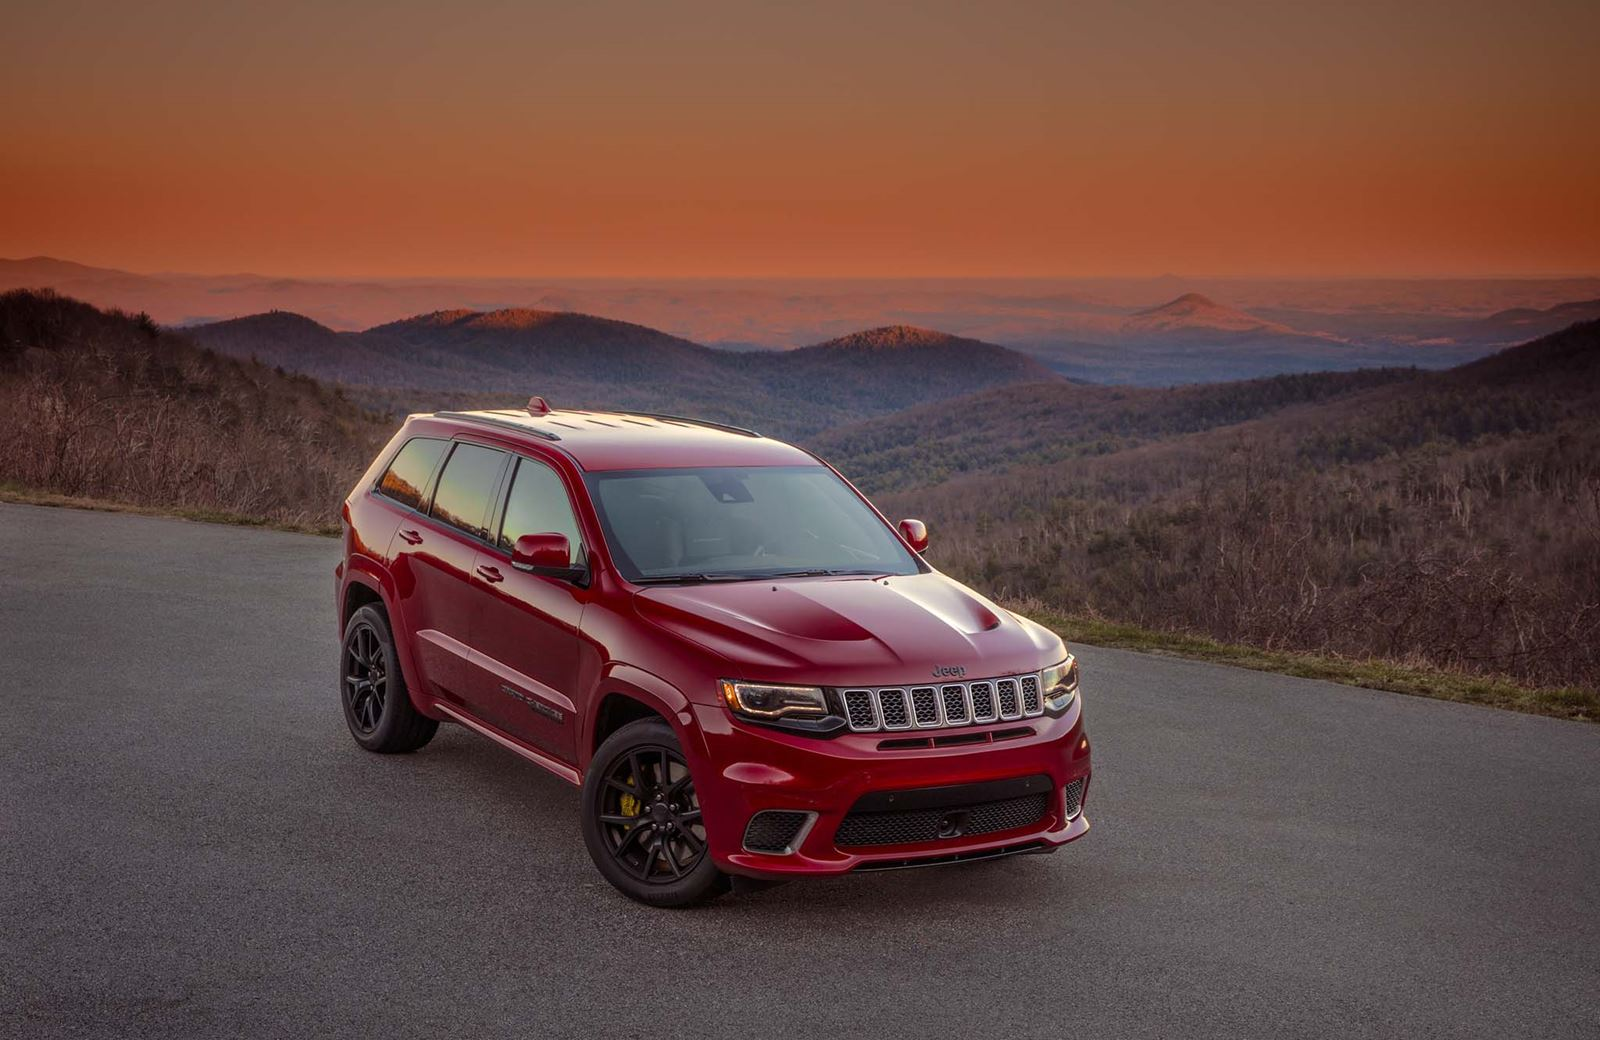 2018 Jeep Grand Cherokee Trackhawk: The school run will never be the same again